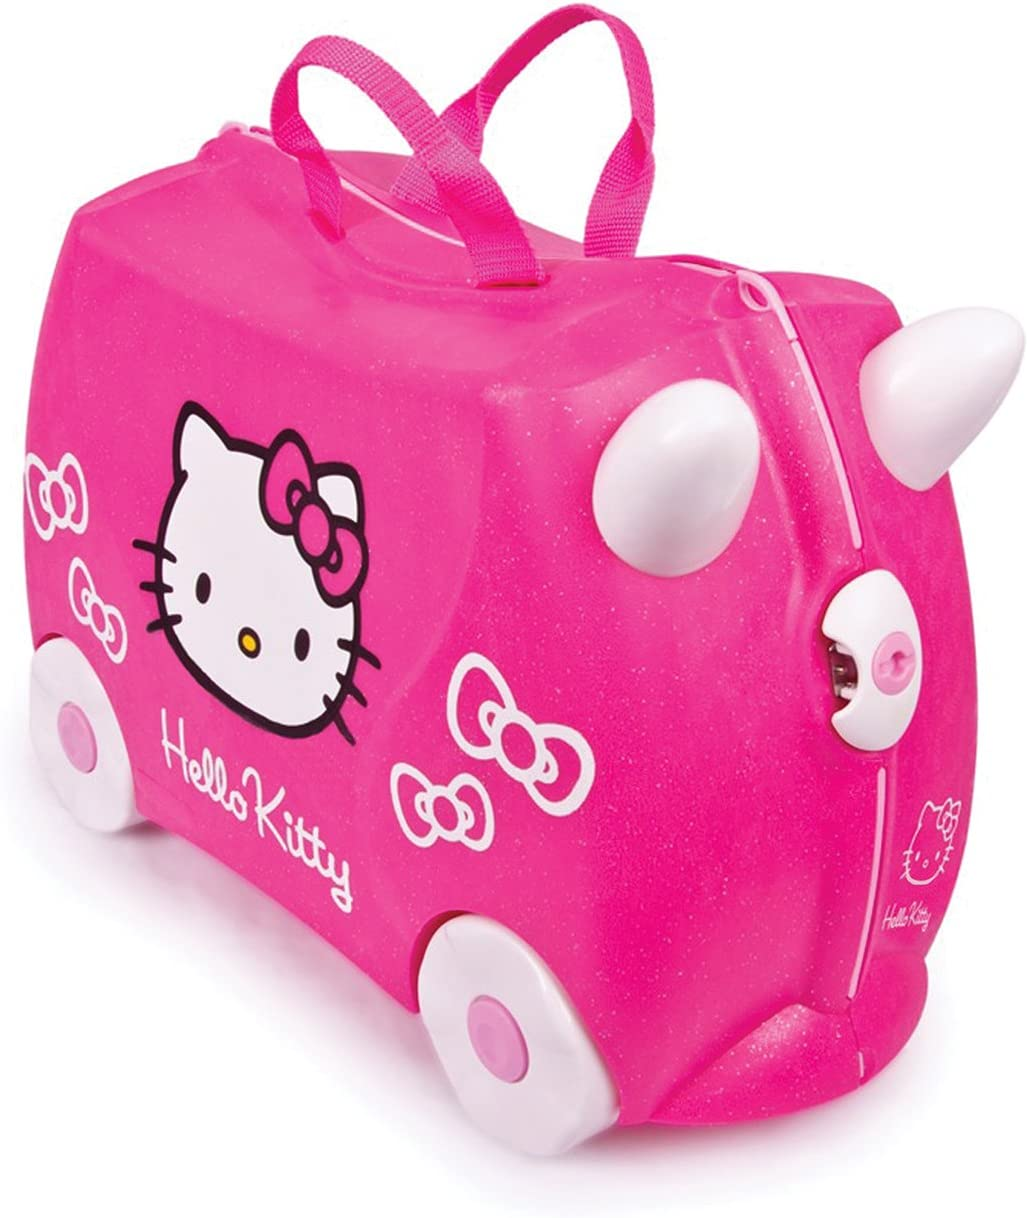 Trunki 0131-GB01 - Equipaje infantil Hello Kitty, 18 L, color rosa